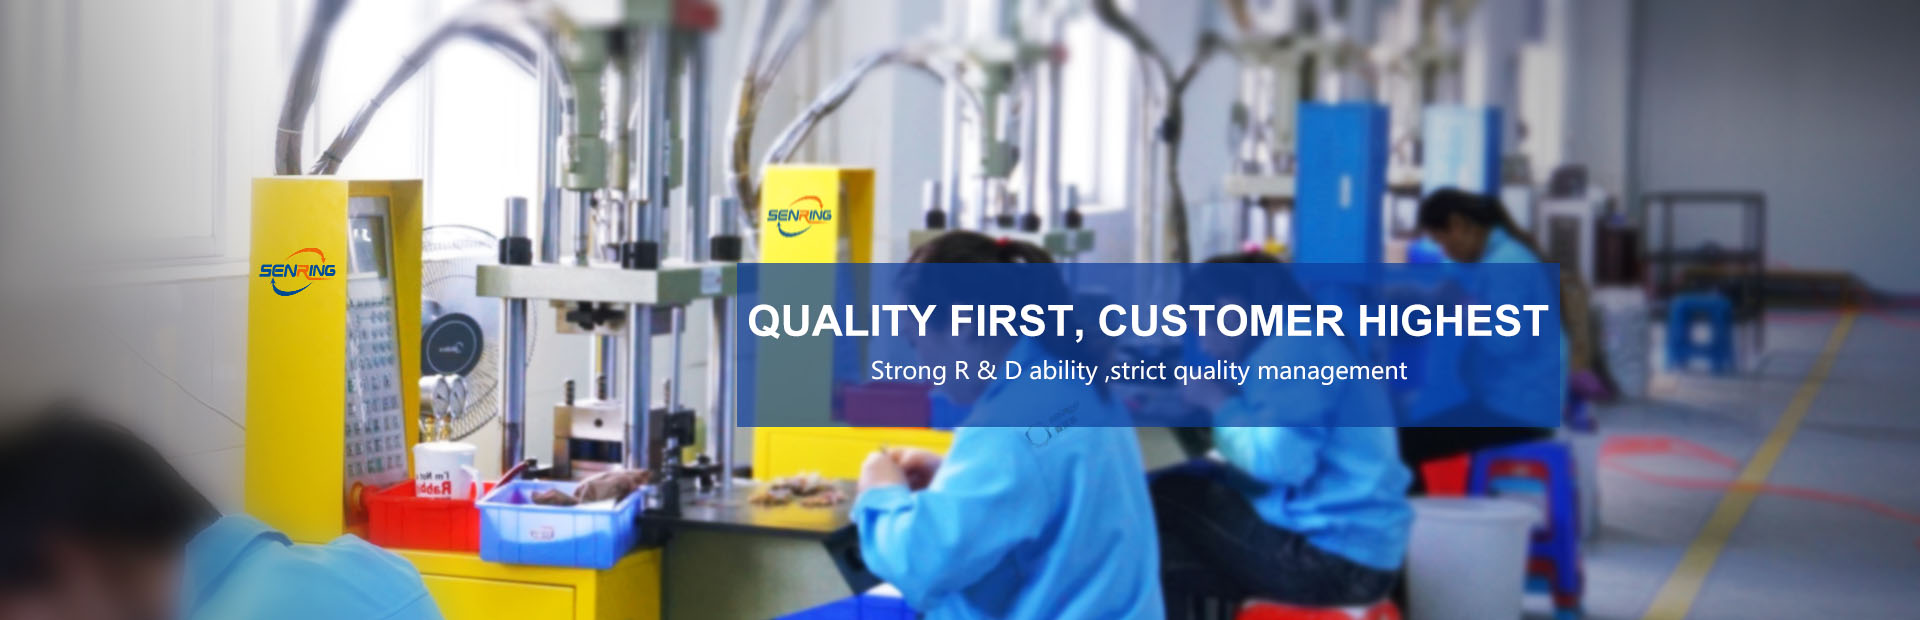 QUALITY FIRST,CUSTOMER HIGHEST